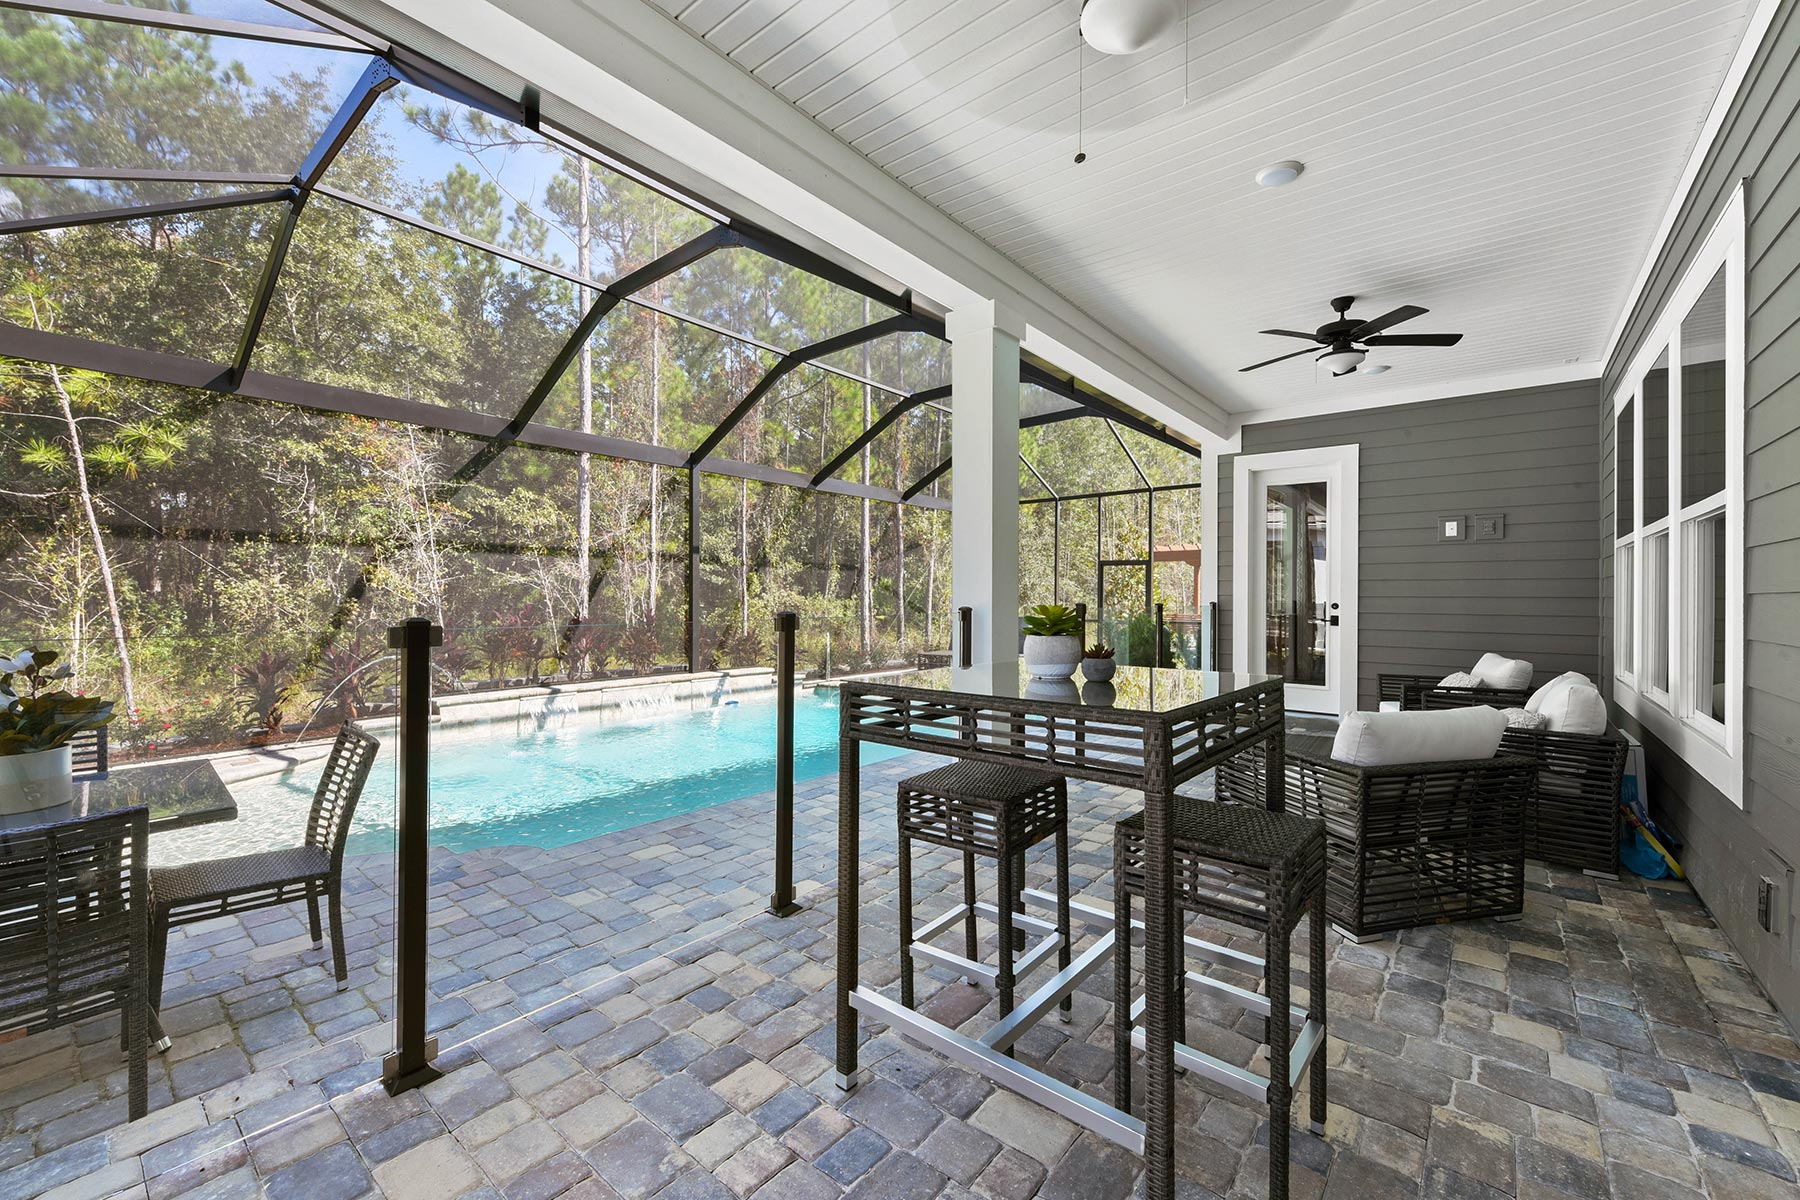 Bridge Plan Patio at RiverTown - WaterSong in St. Johns Florida by Mattamy Homes